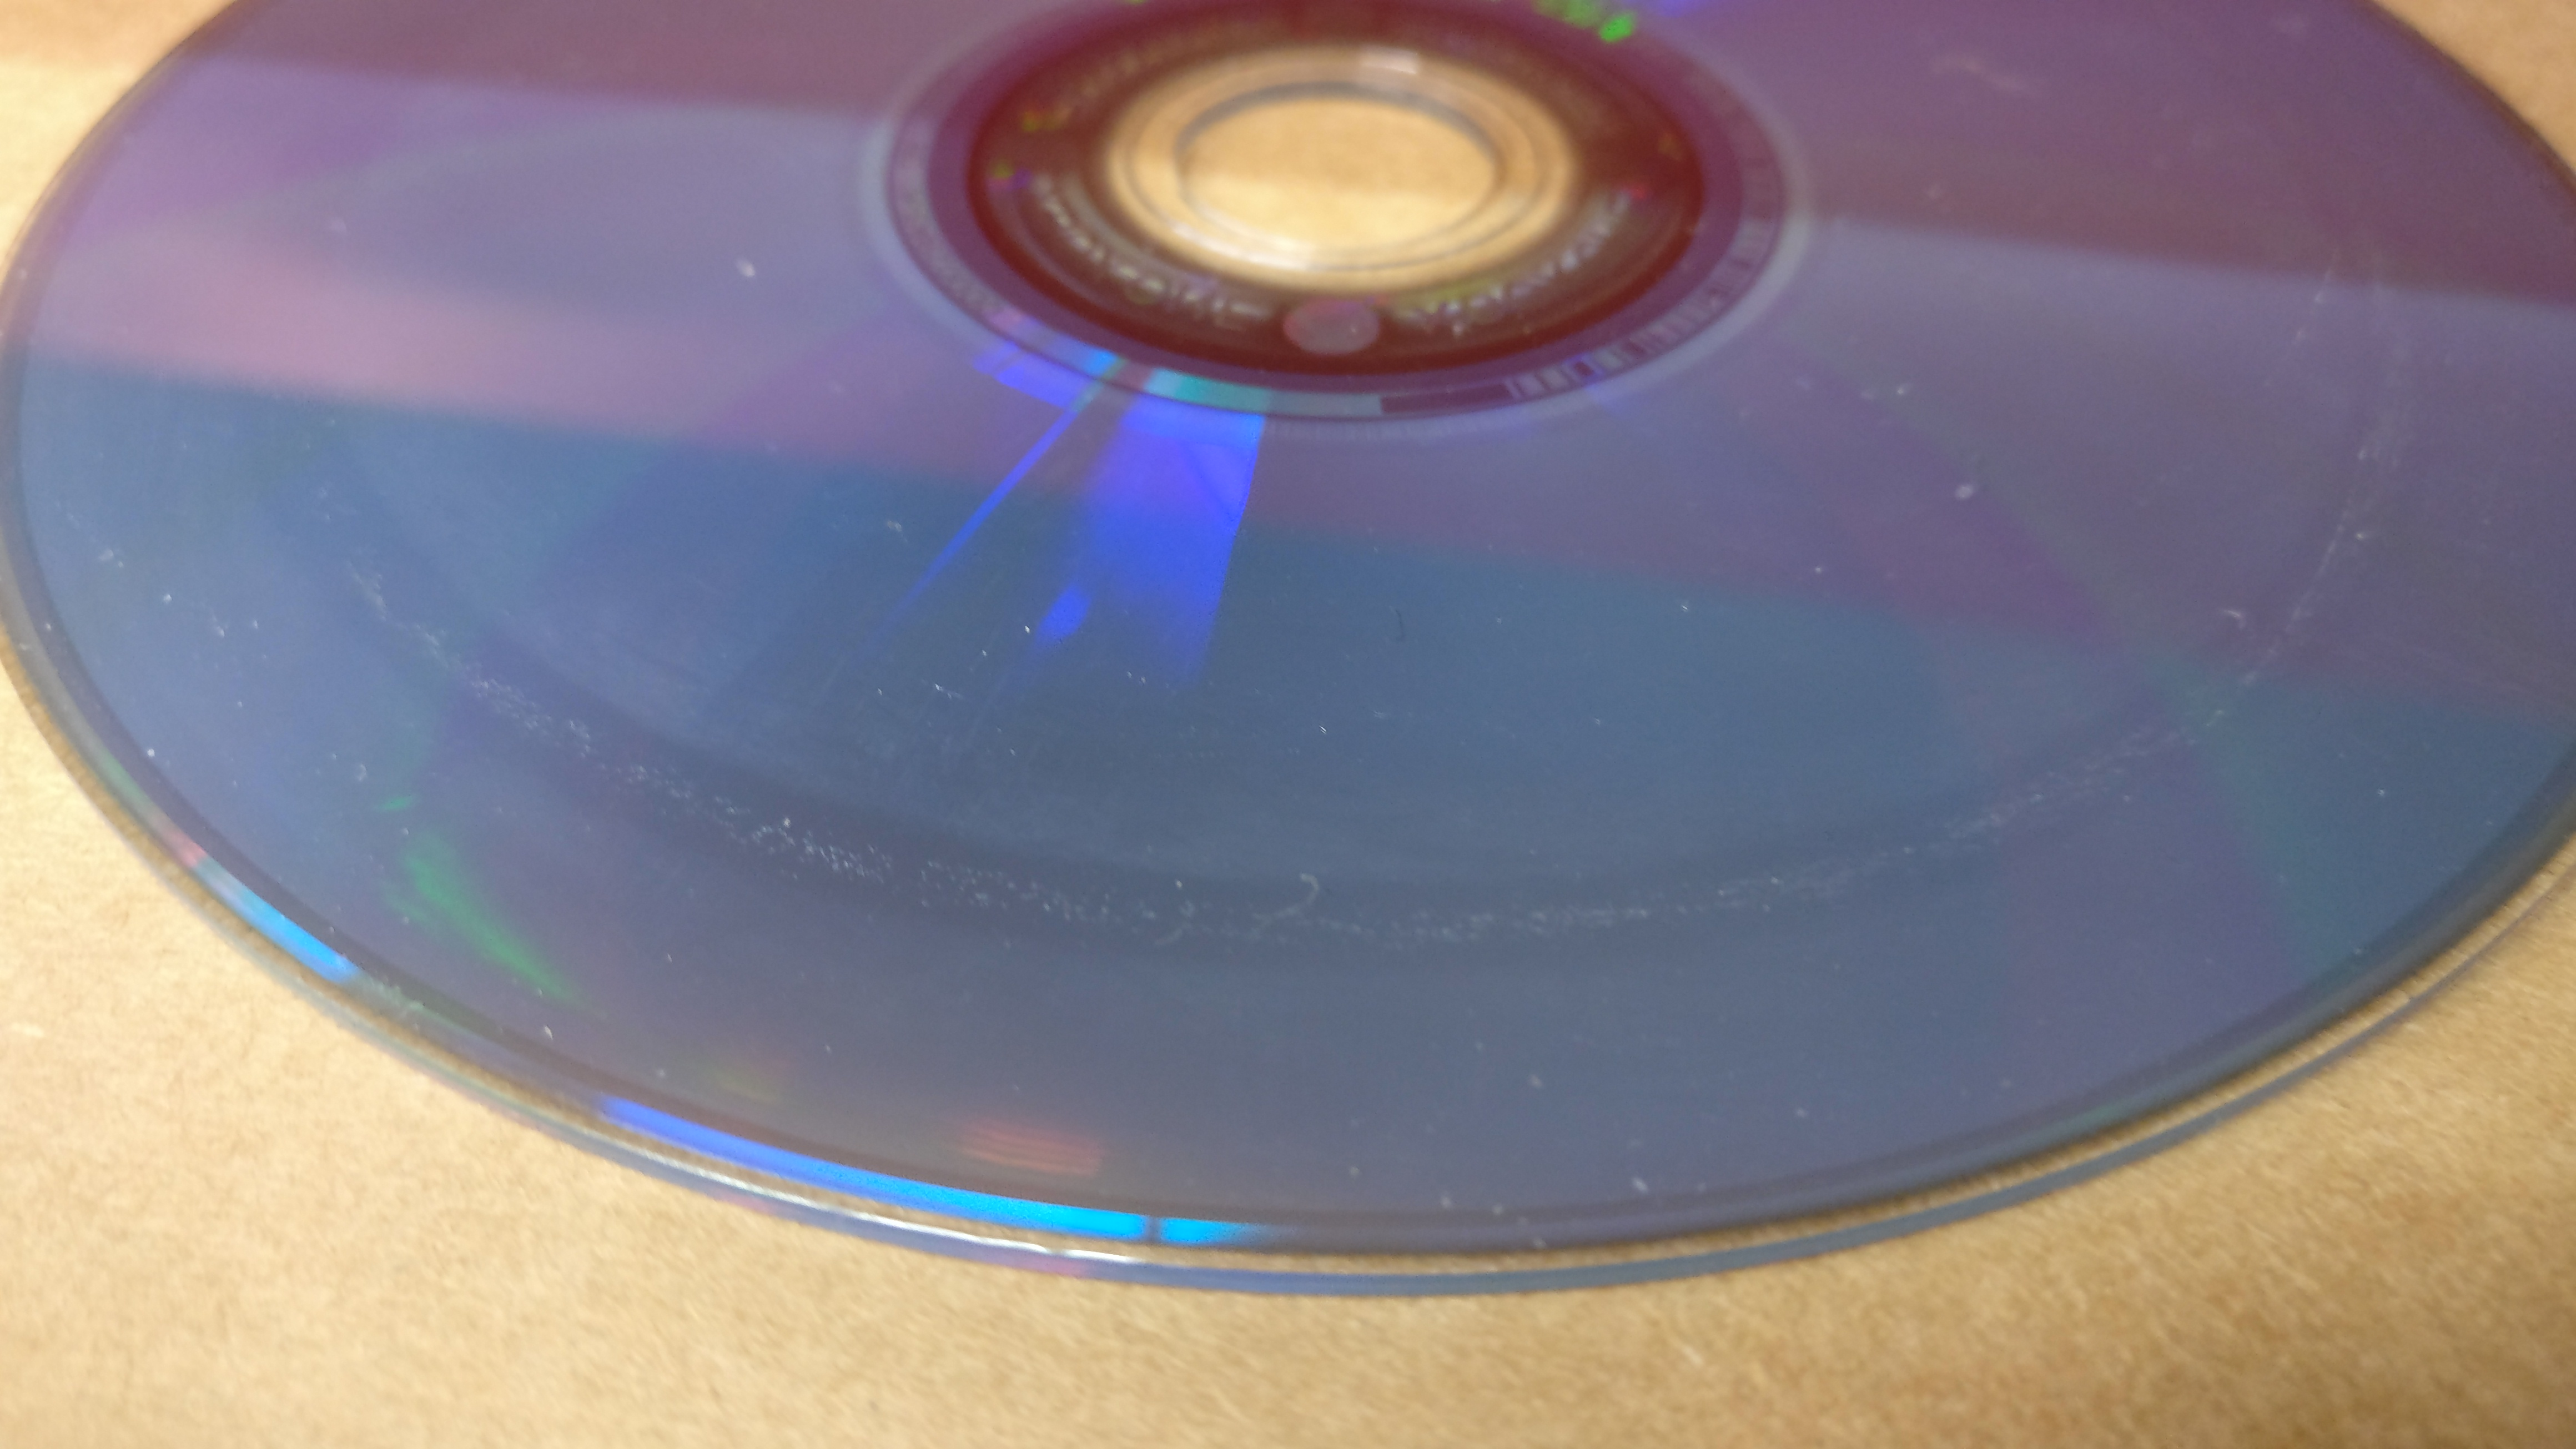 Favorite Laser Burn Blu Ray How To Fix Laser Easy Chaos Hour How To Clear Scratch Disk Adobe Photoshop How To Clear Scratch Disk Illustrator dpreview How To Clear Scratch Disk